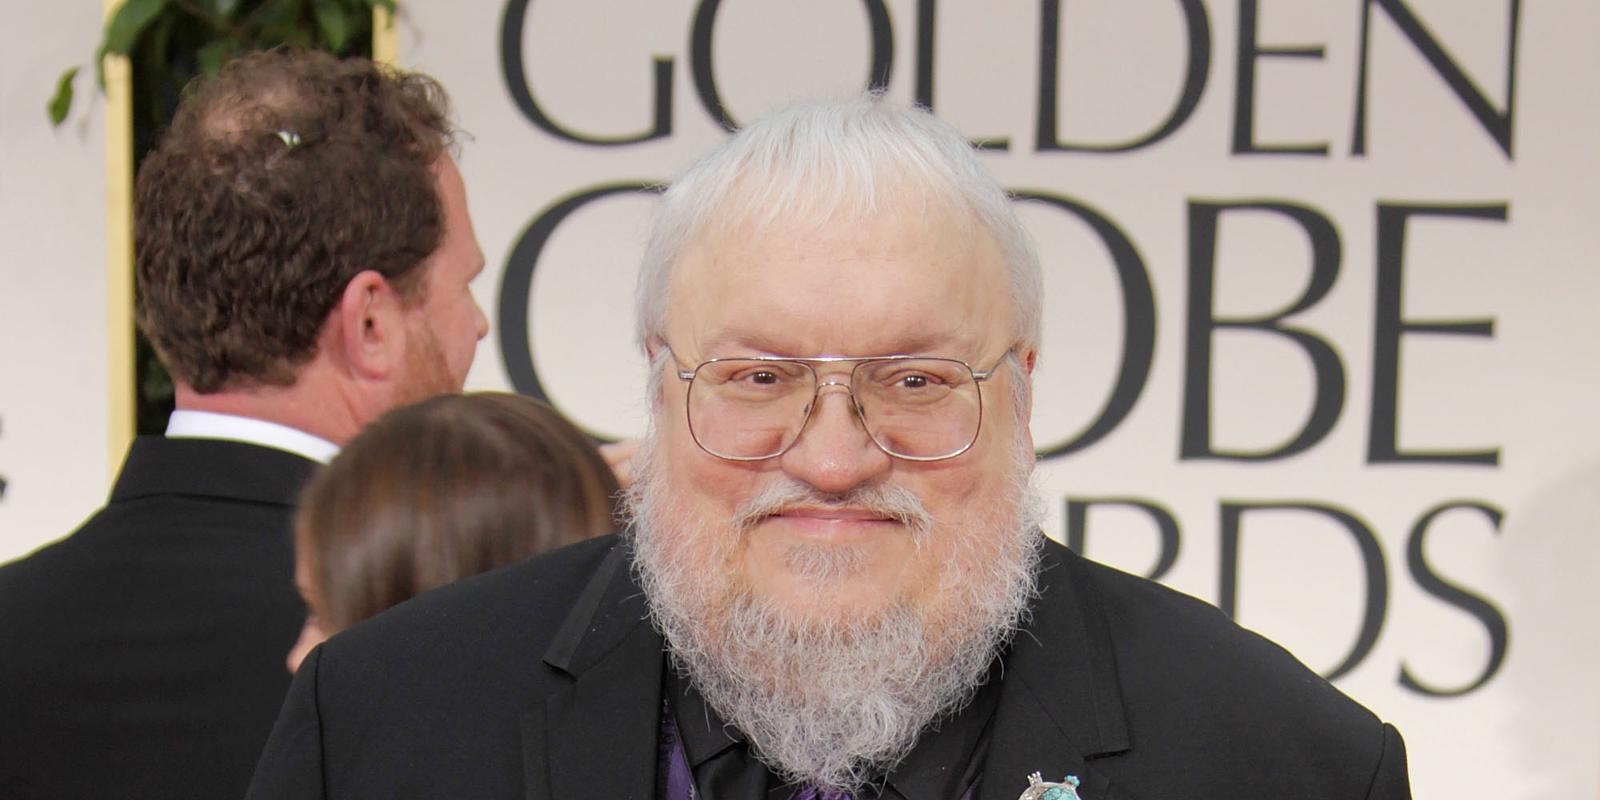 George Rr Martin Libros Game Of Thrones George Rr Martin Reveals He Cannot Veto Game Of Thrones Deaths